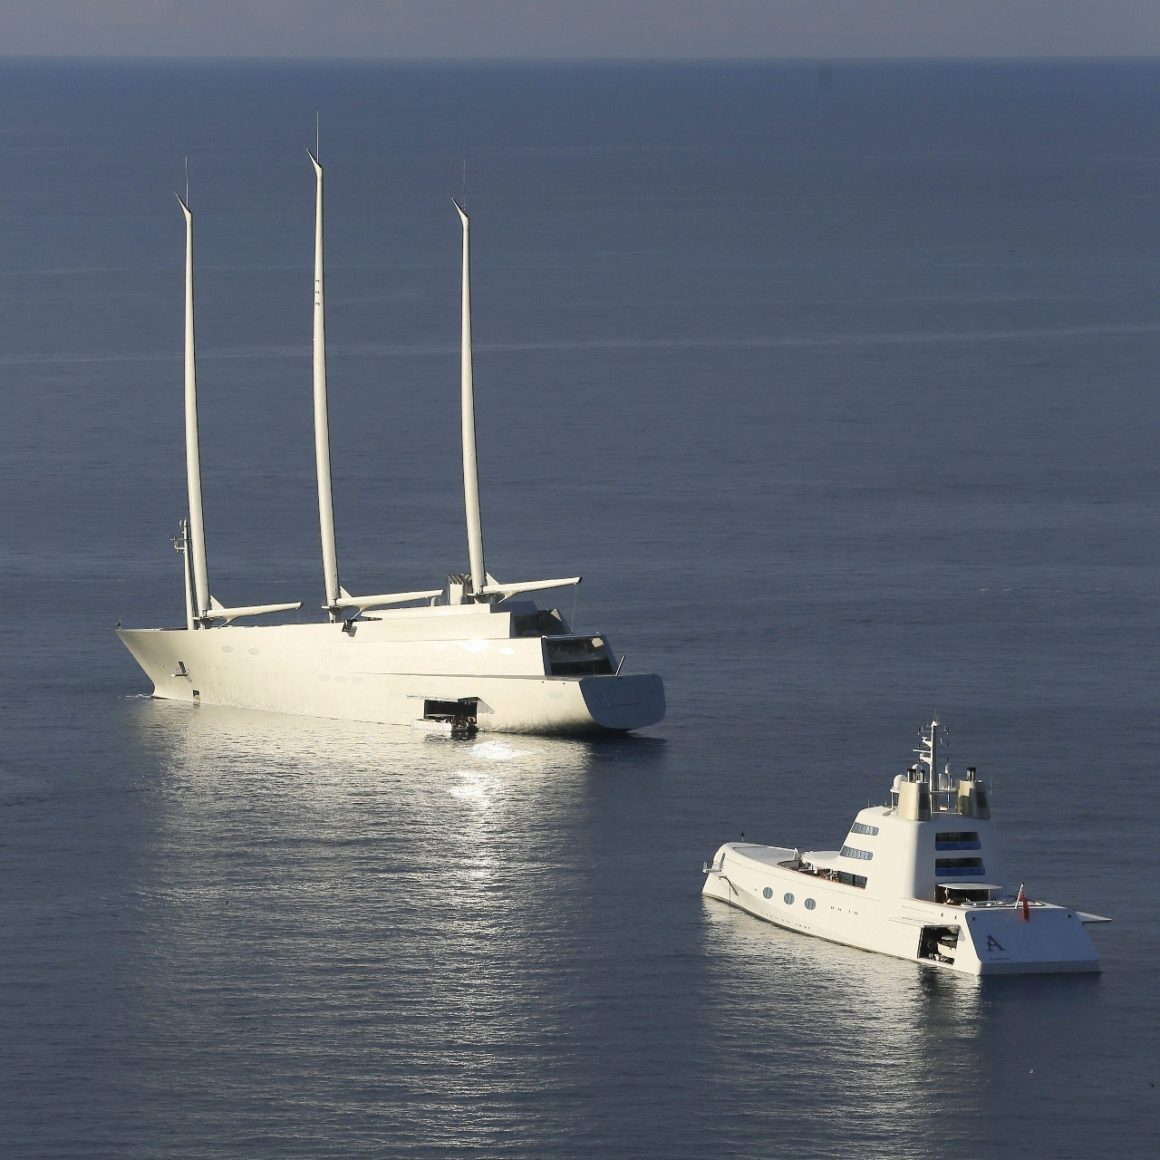 worlds-most-expensive-boat-sailing-iacht-a-worth-360m-faces-off-with-240m-motor-iacht-a-in-monte-carlo-harbour_jpg